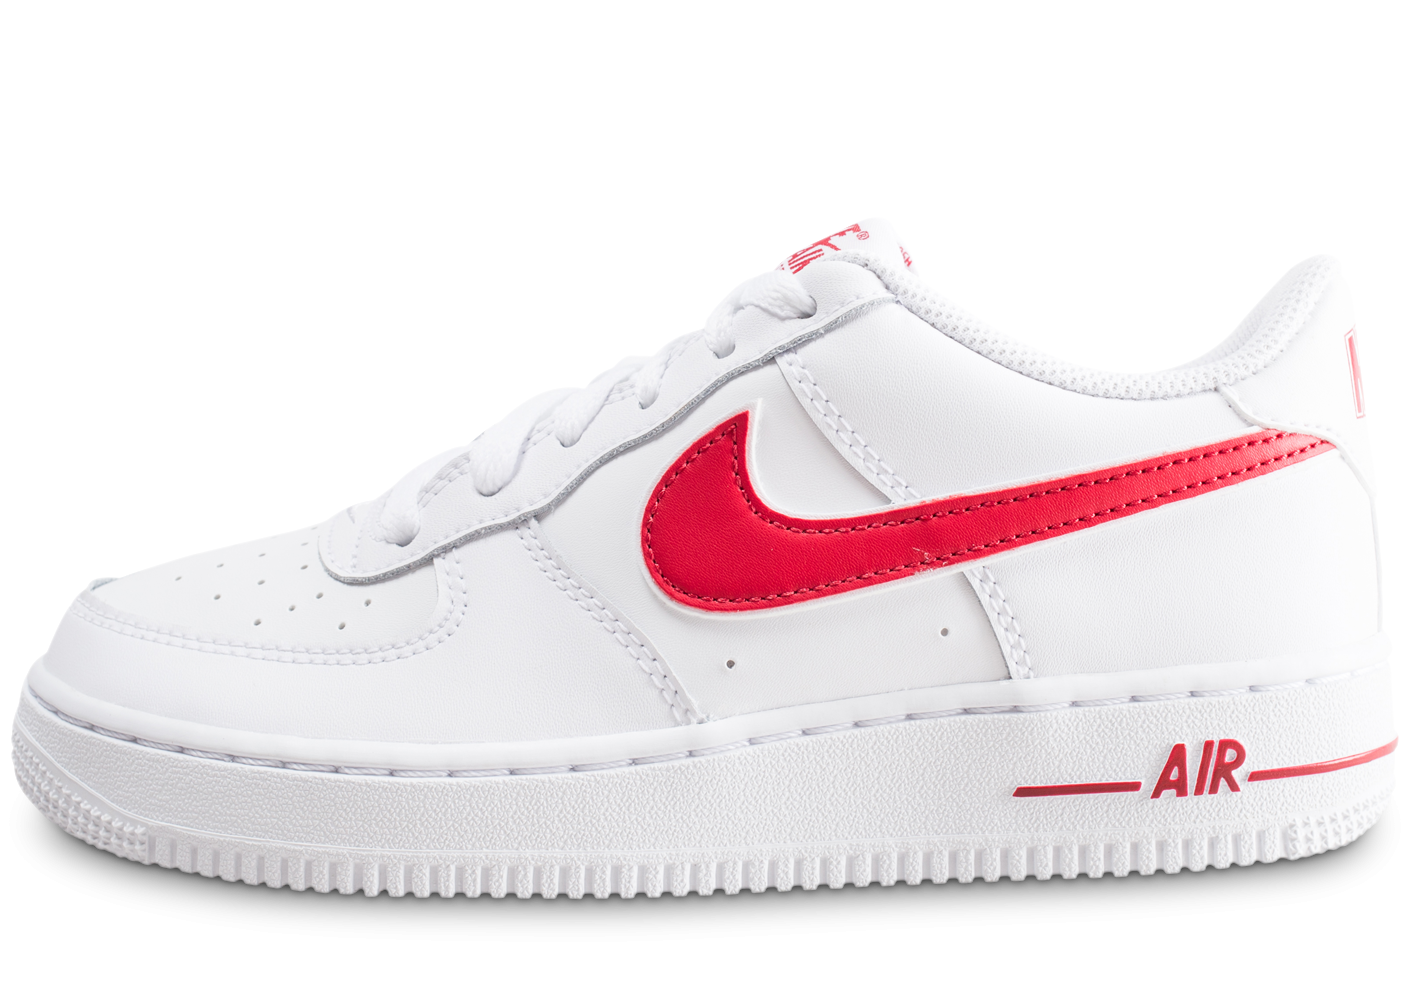 Nike Air Force 1 Low blanche et rouge junior